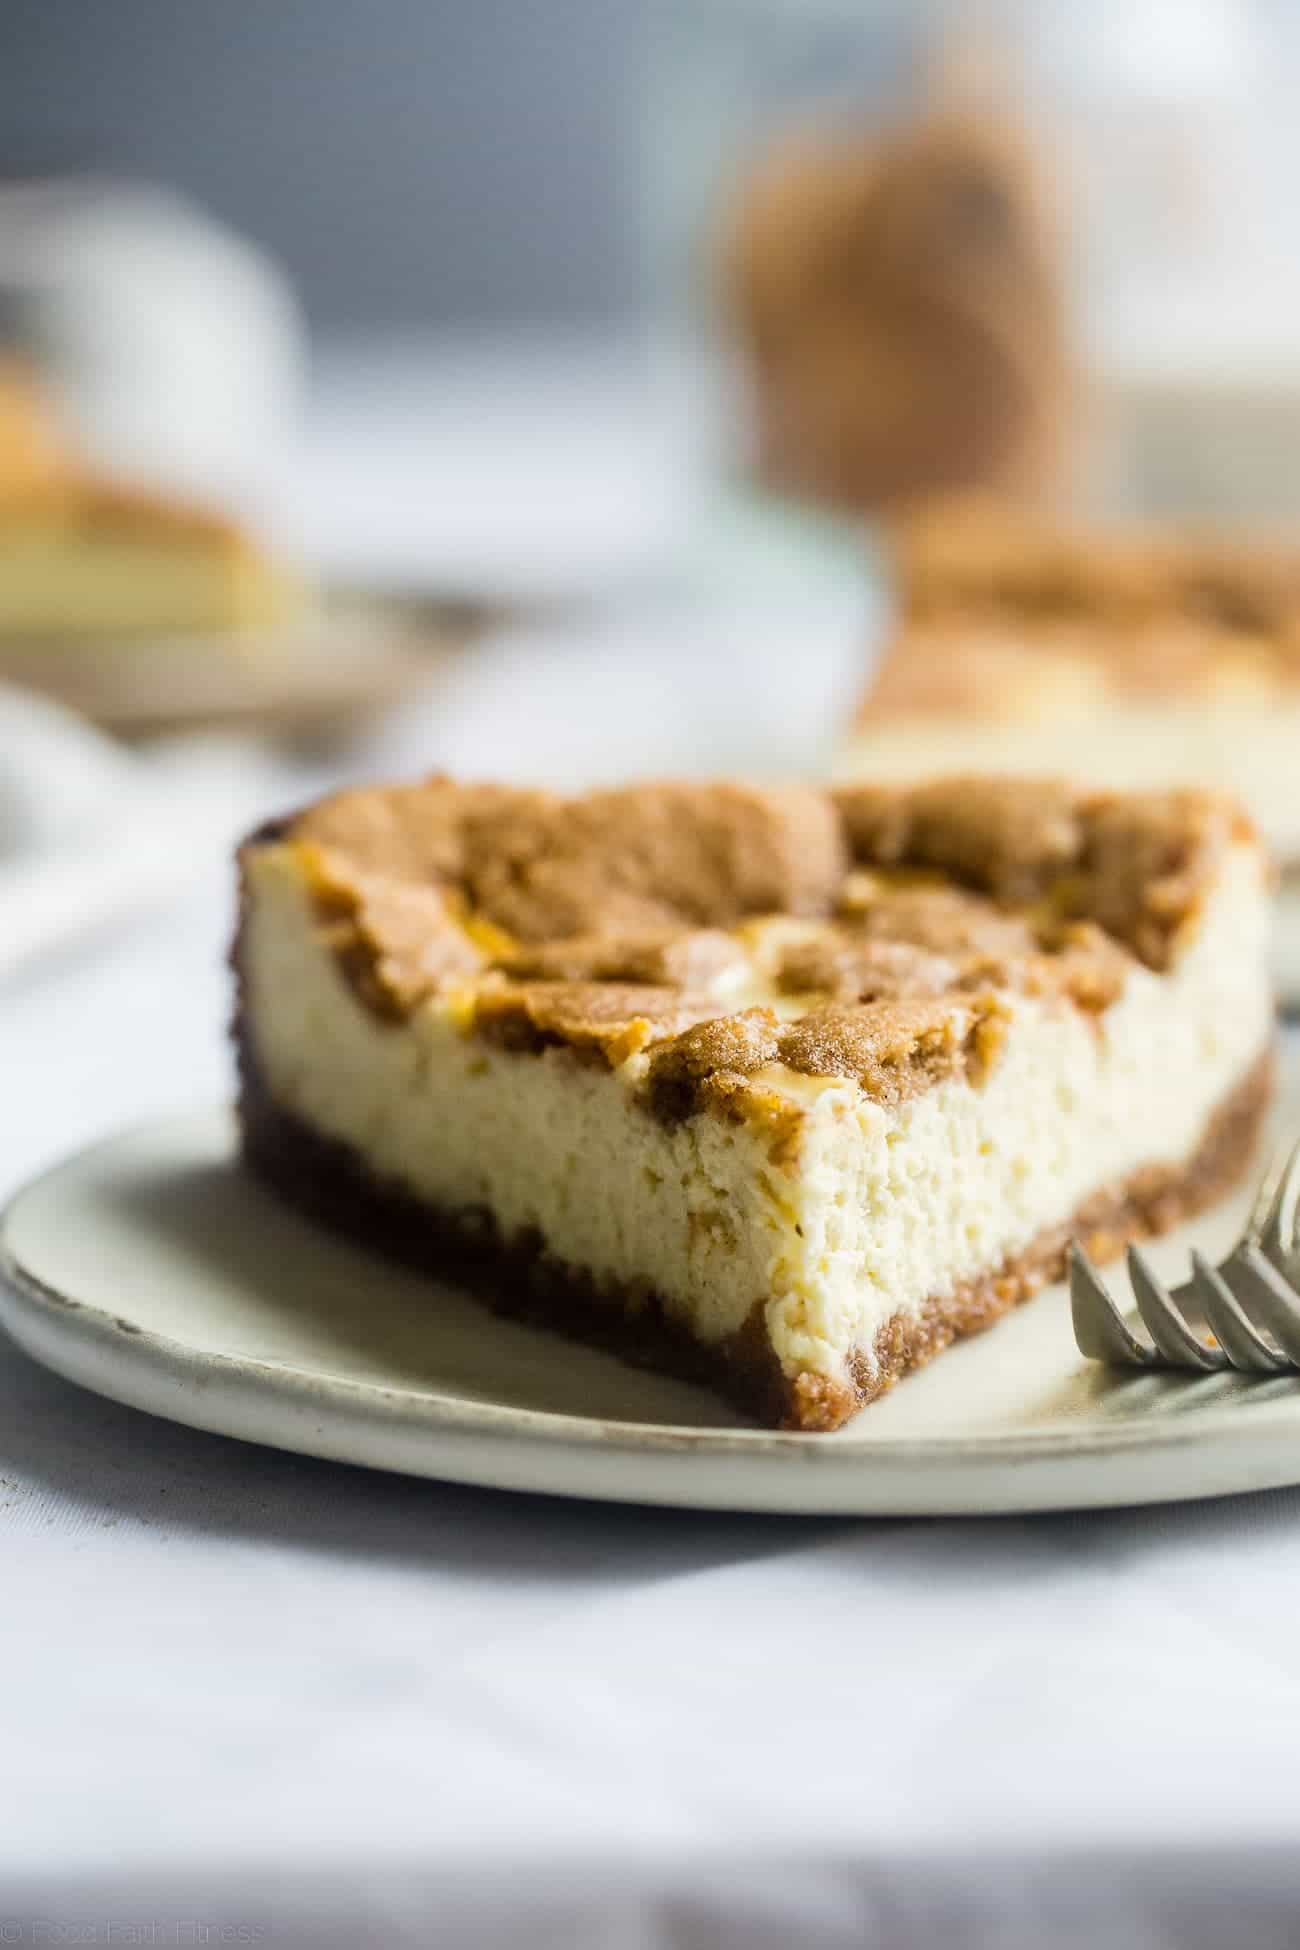 Gluten Free Snickerdoodle Greek Yogurt Cheesecake - This easy, protein-packed cheesecake has a soft and chewy, grain and gluten free snickerdoodle crust! It's a healthier, delicious and festive dessert for the holidays! | Foodfaithfitness.com | @FoodFaithFit